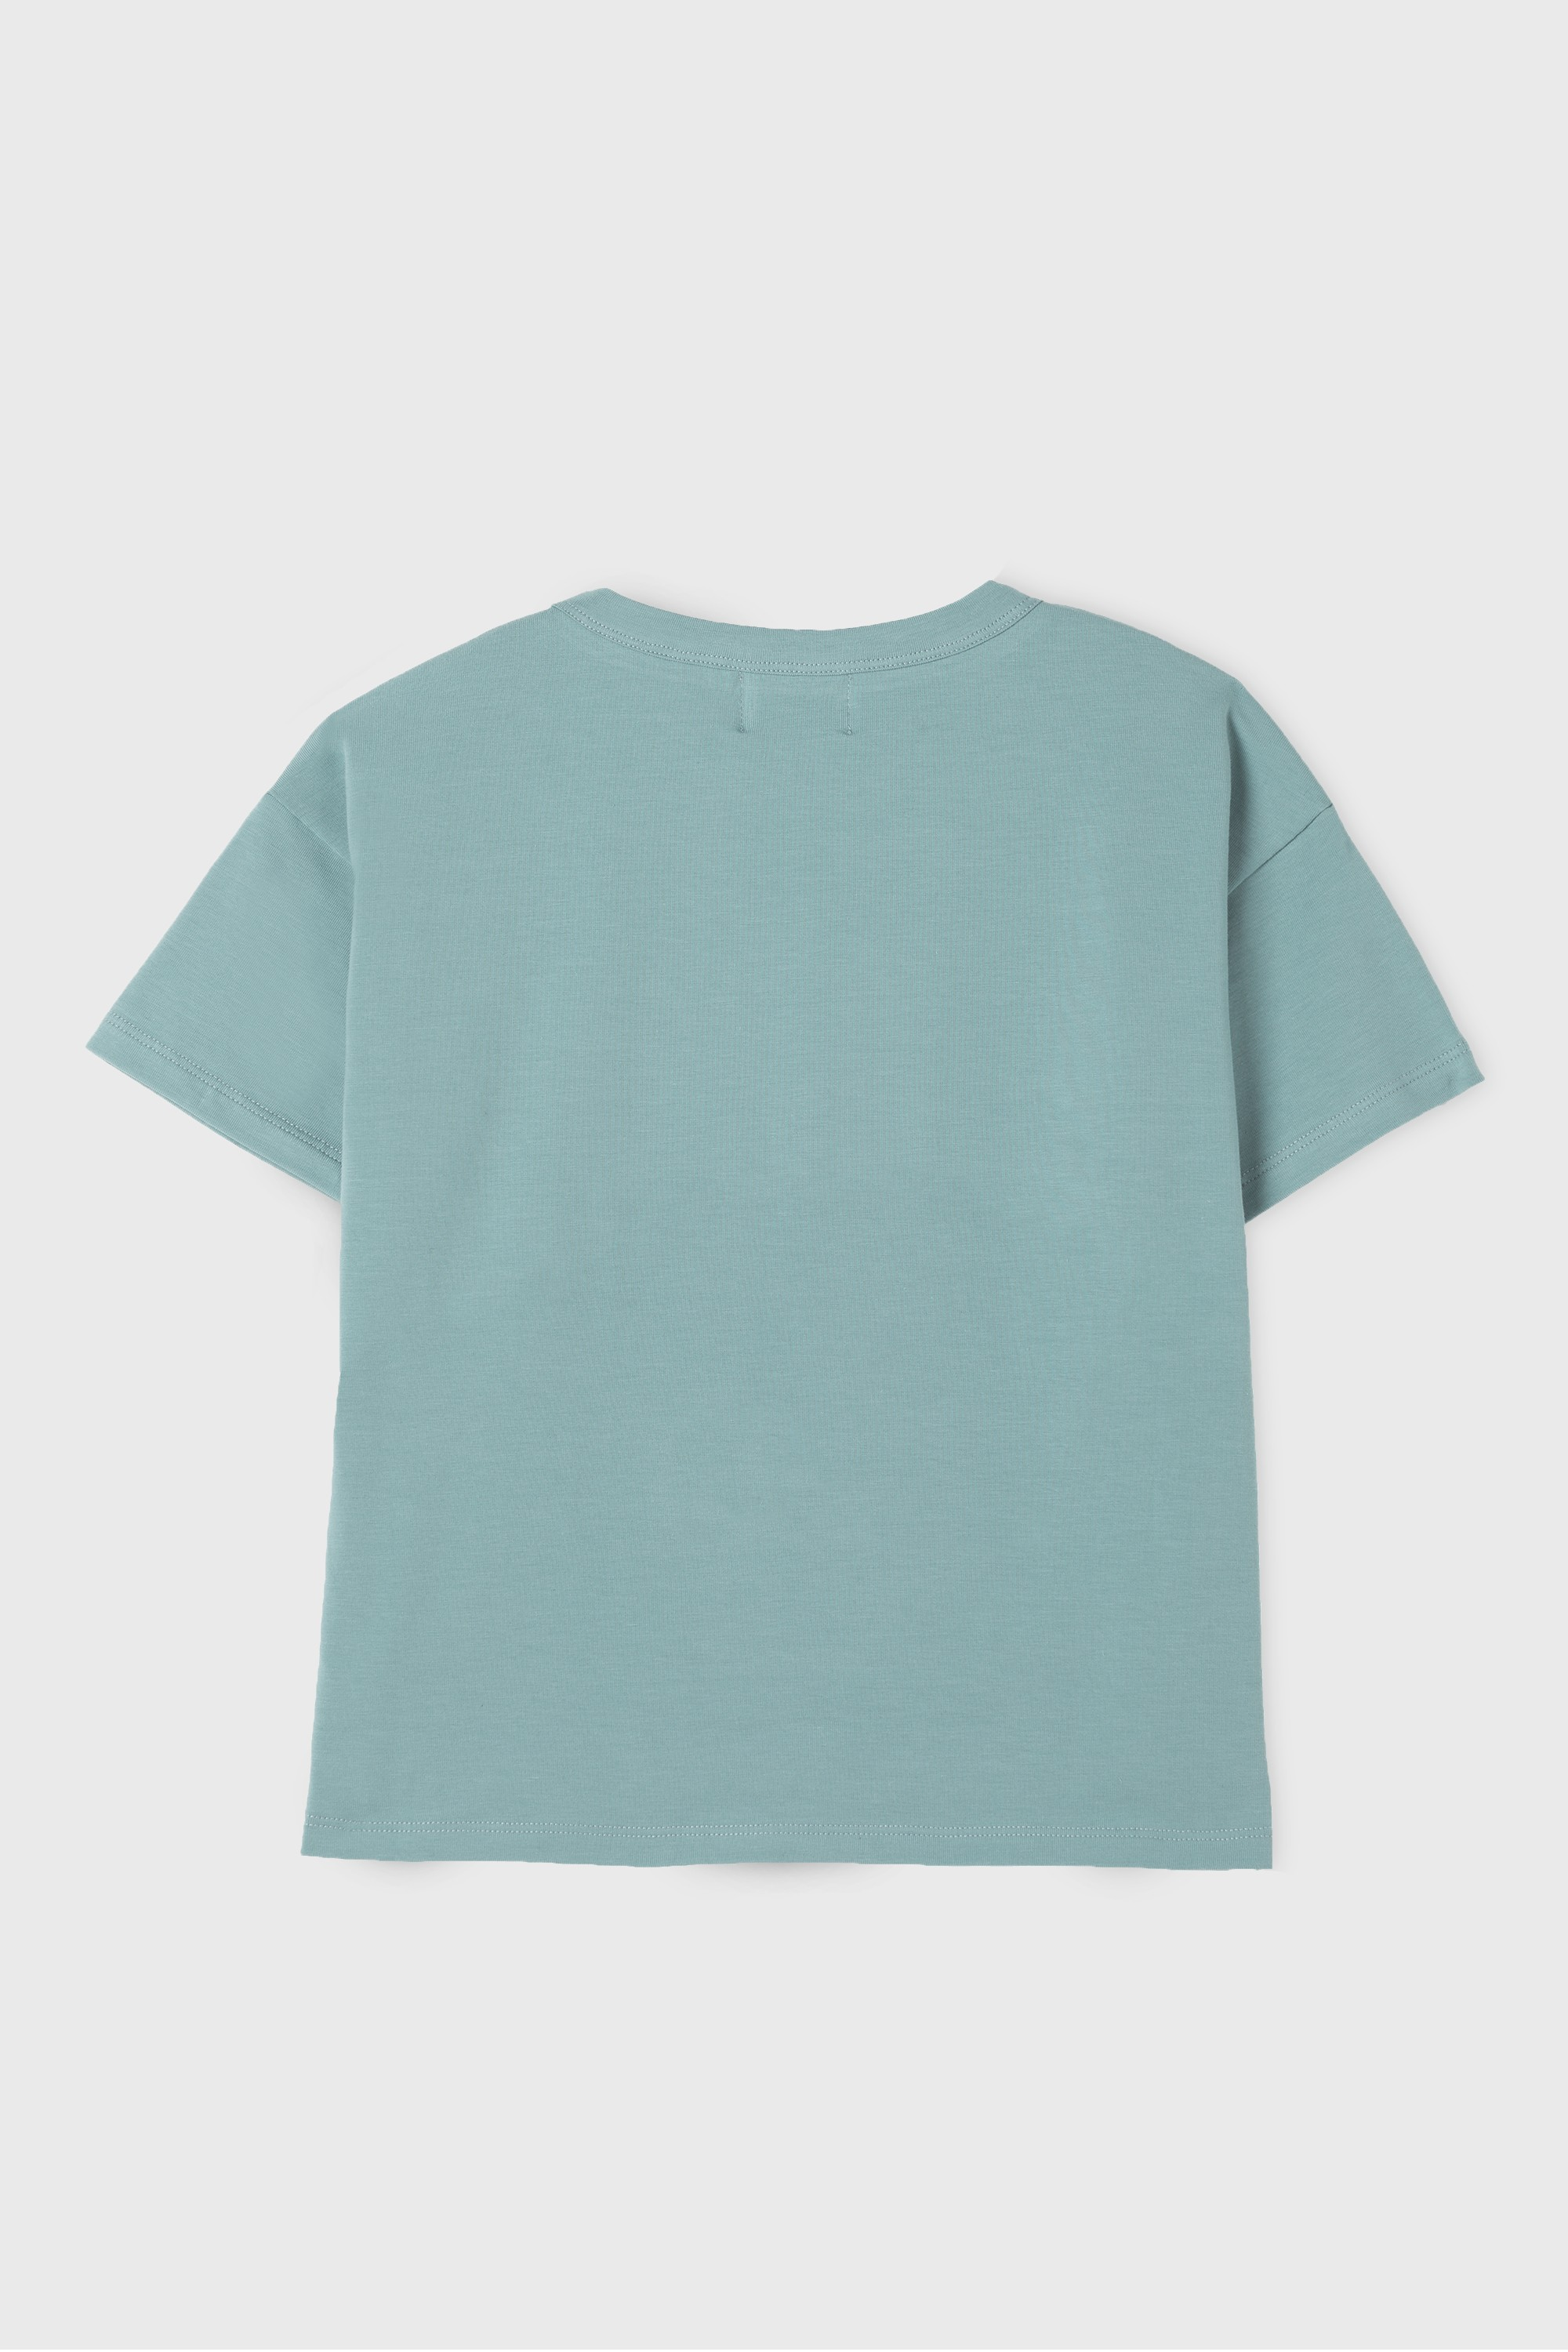 GREEN COTTON JERSEY  T-SHIRT